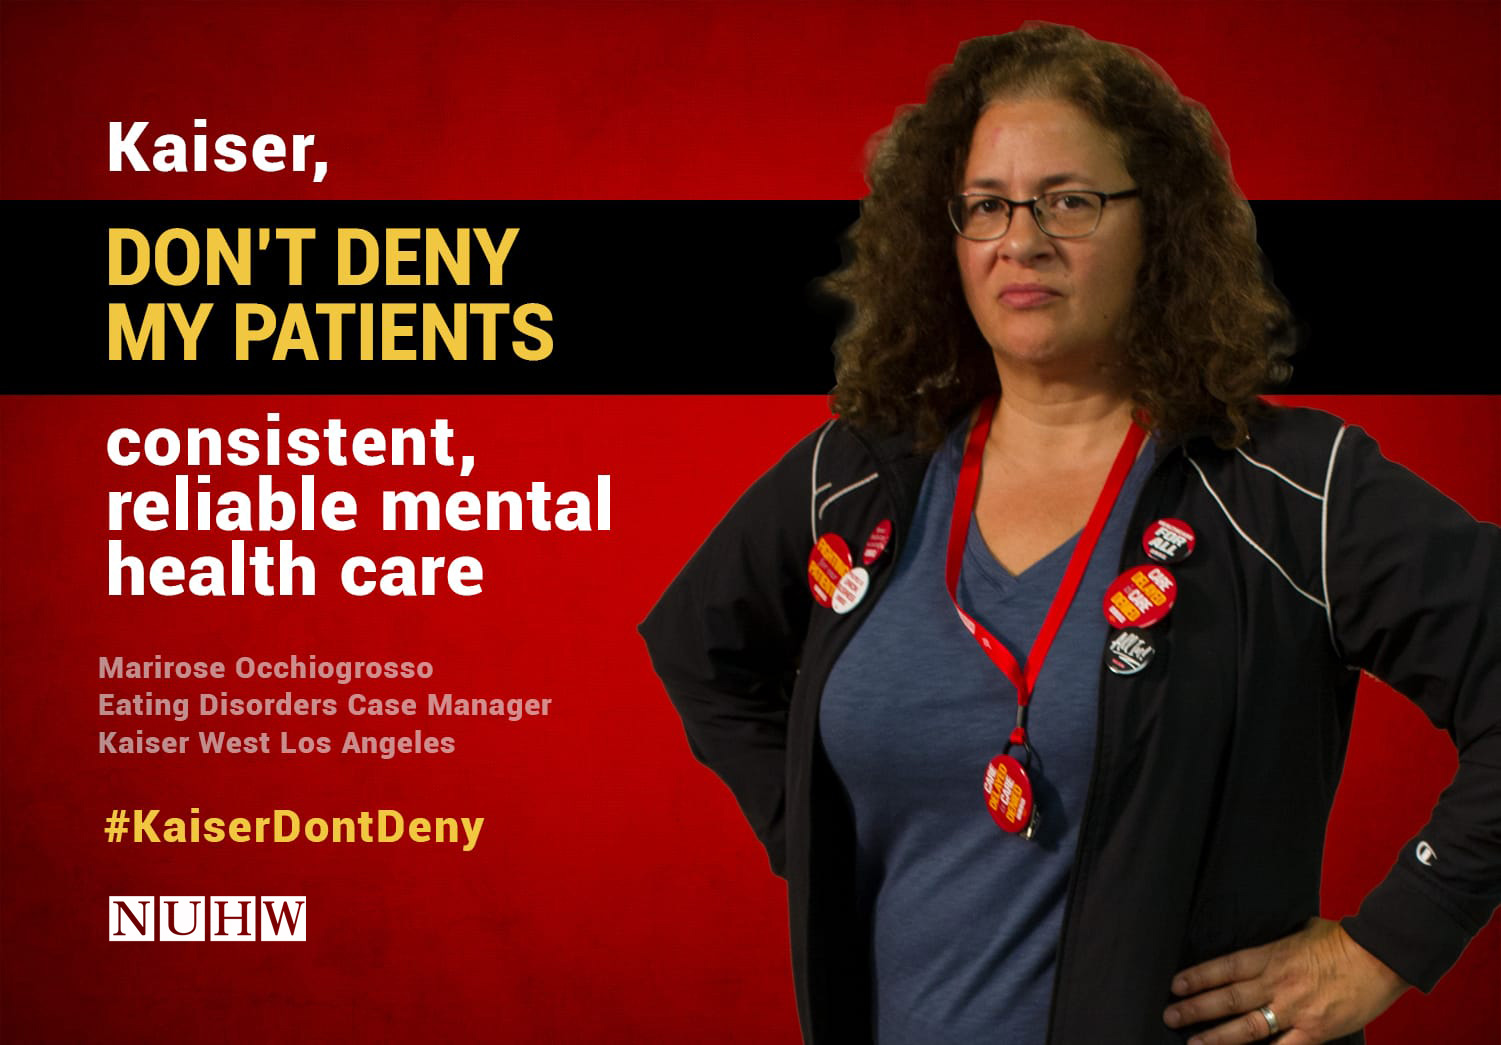 Kaiser, don't deny my patients consistent, reliable mental health care. -- Marirose Occhiogrosso, Eating Disorders Case Manager, Kaiser West Los Angeles